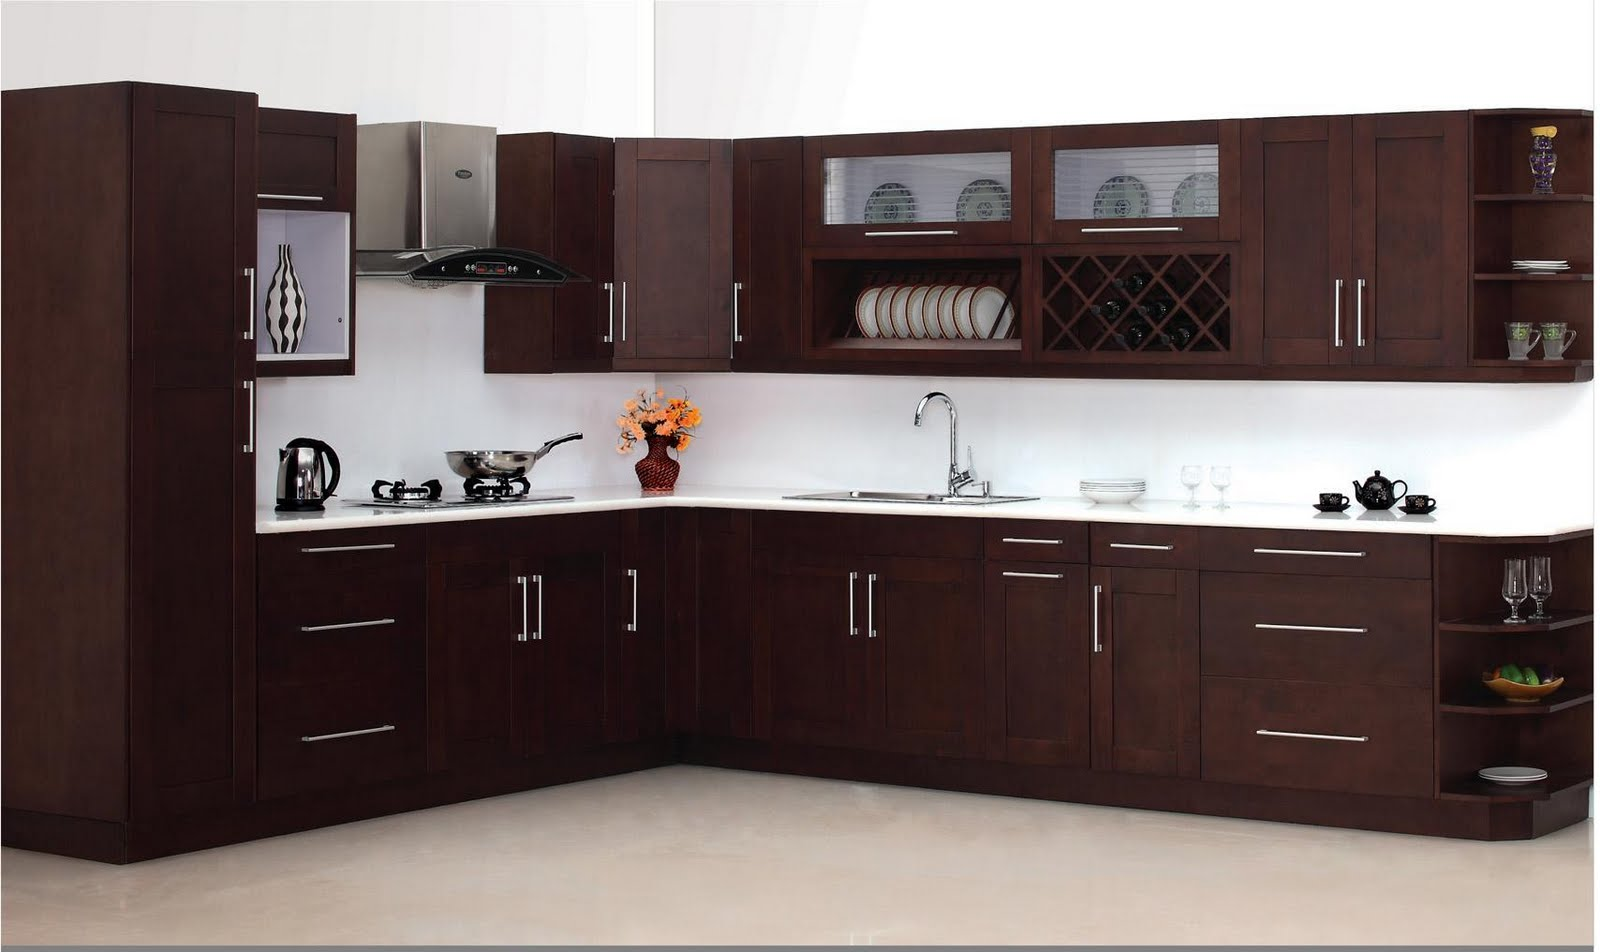 The cabinet spot april 2011 for Kitchen designs with espresso cabinets